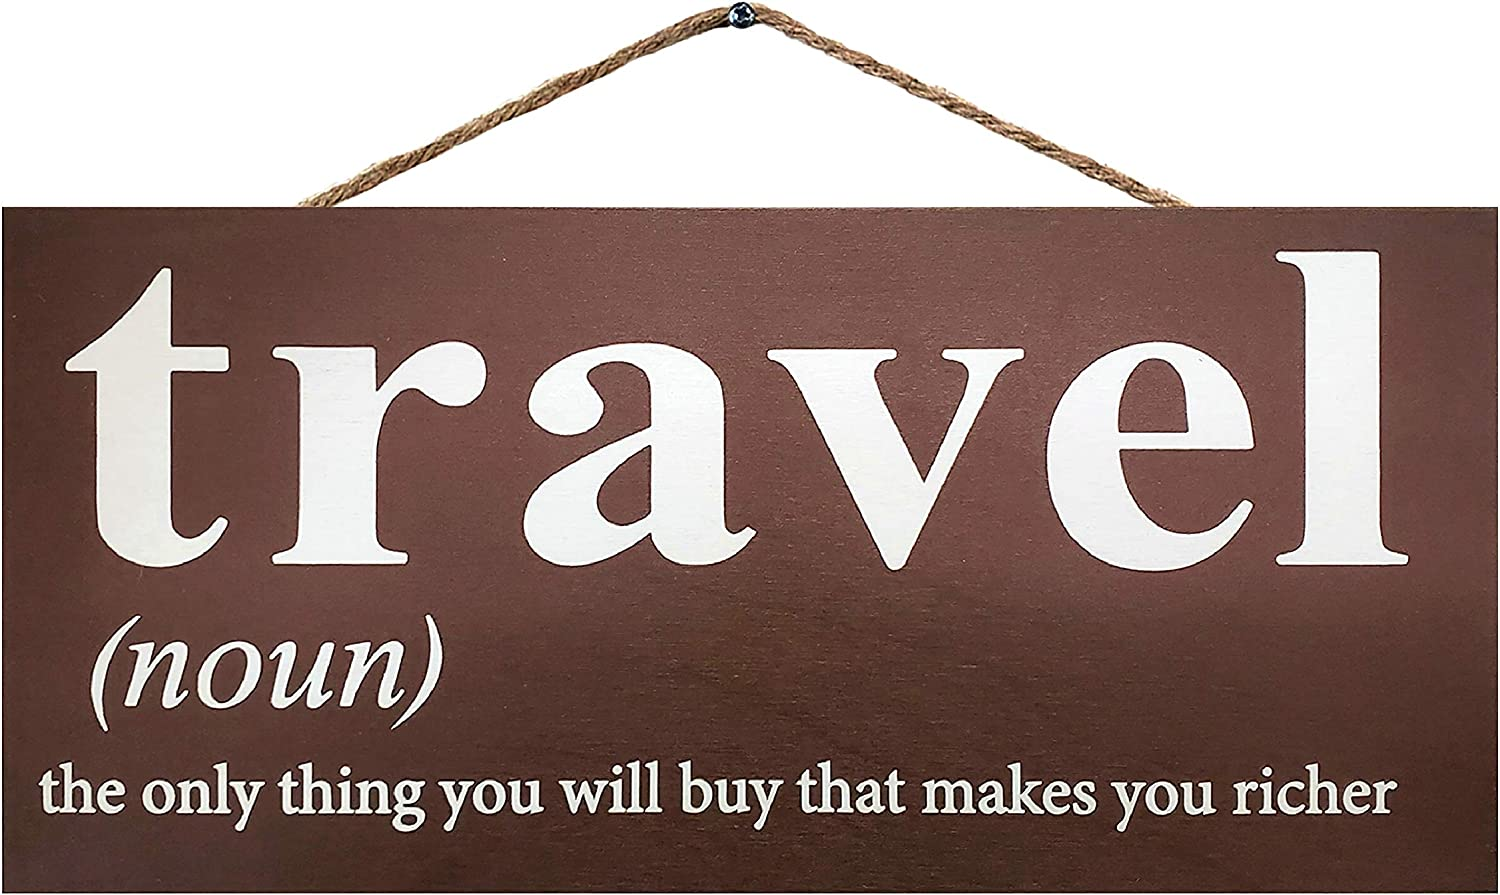 JennyGems Travel Wood Sign   Travel The Only Thing You Will Buy That Makes You Richer   Travel Decor Wall Hanging   Travel Themed Home Accent   Travel Room   Travel Decoration